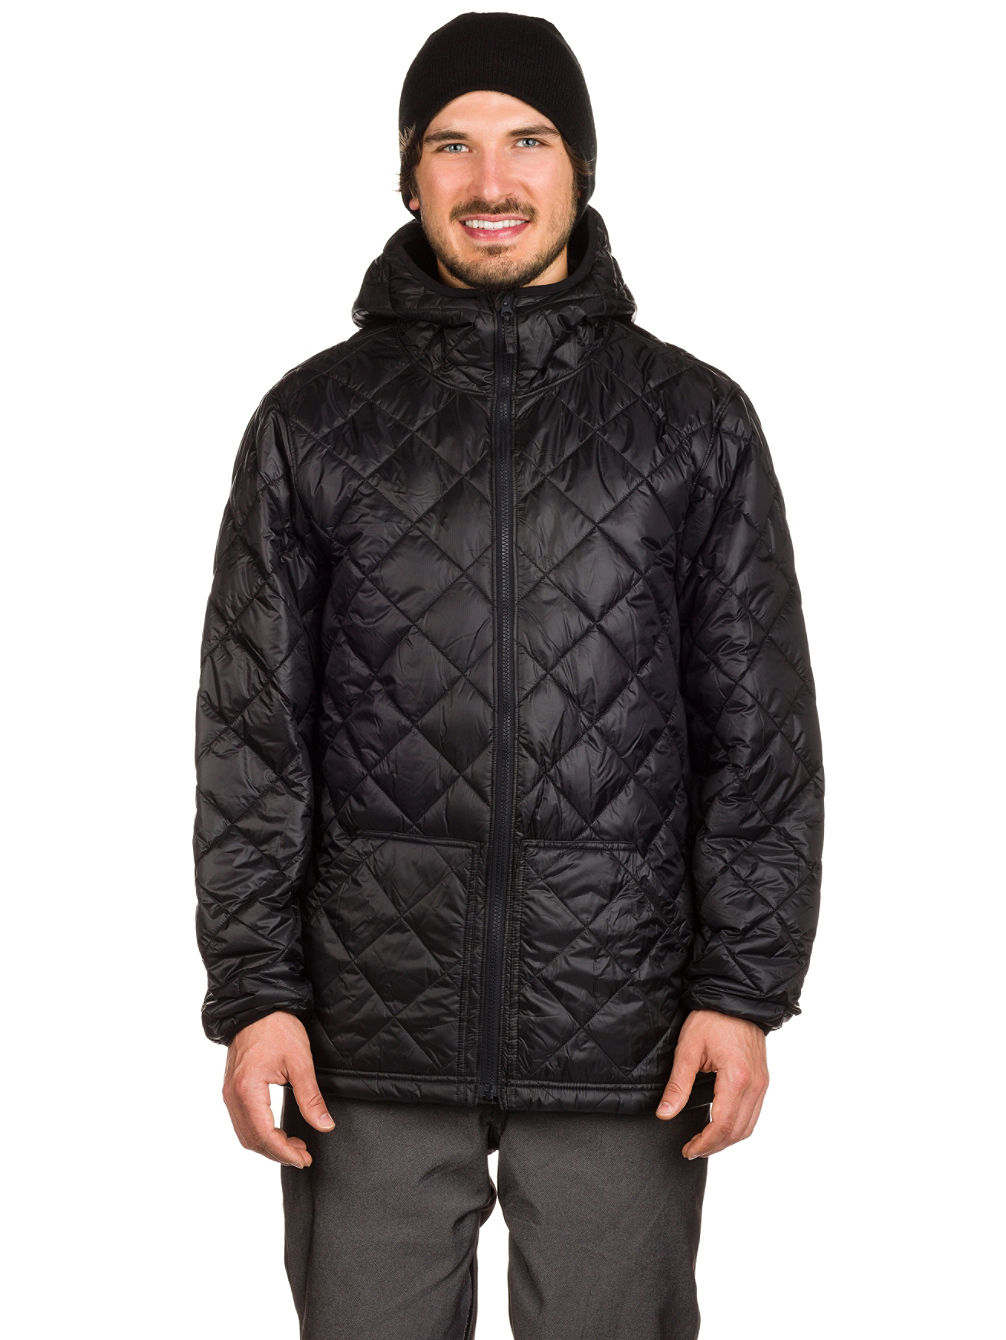 DWR Chambers Jacket